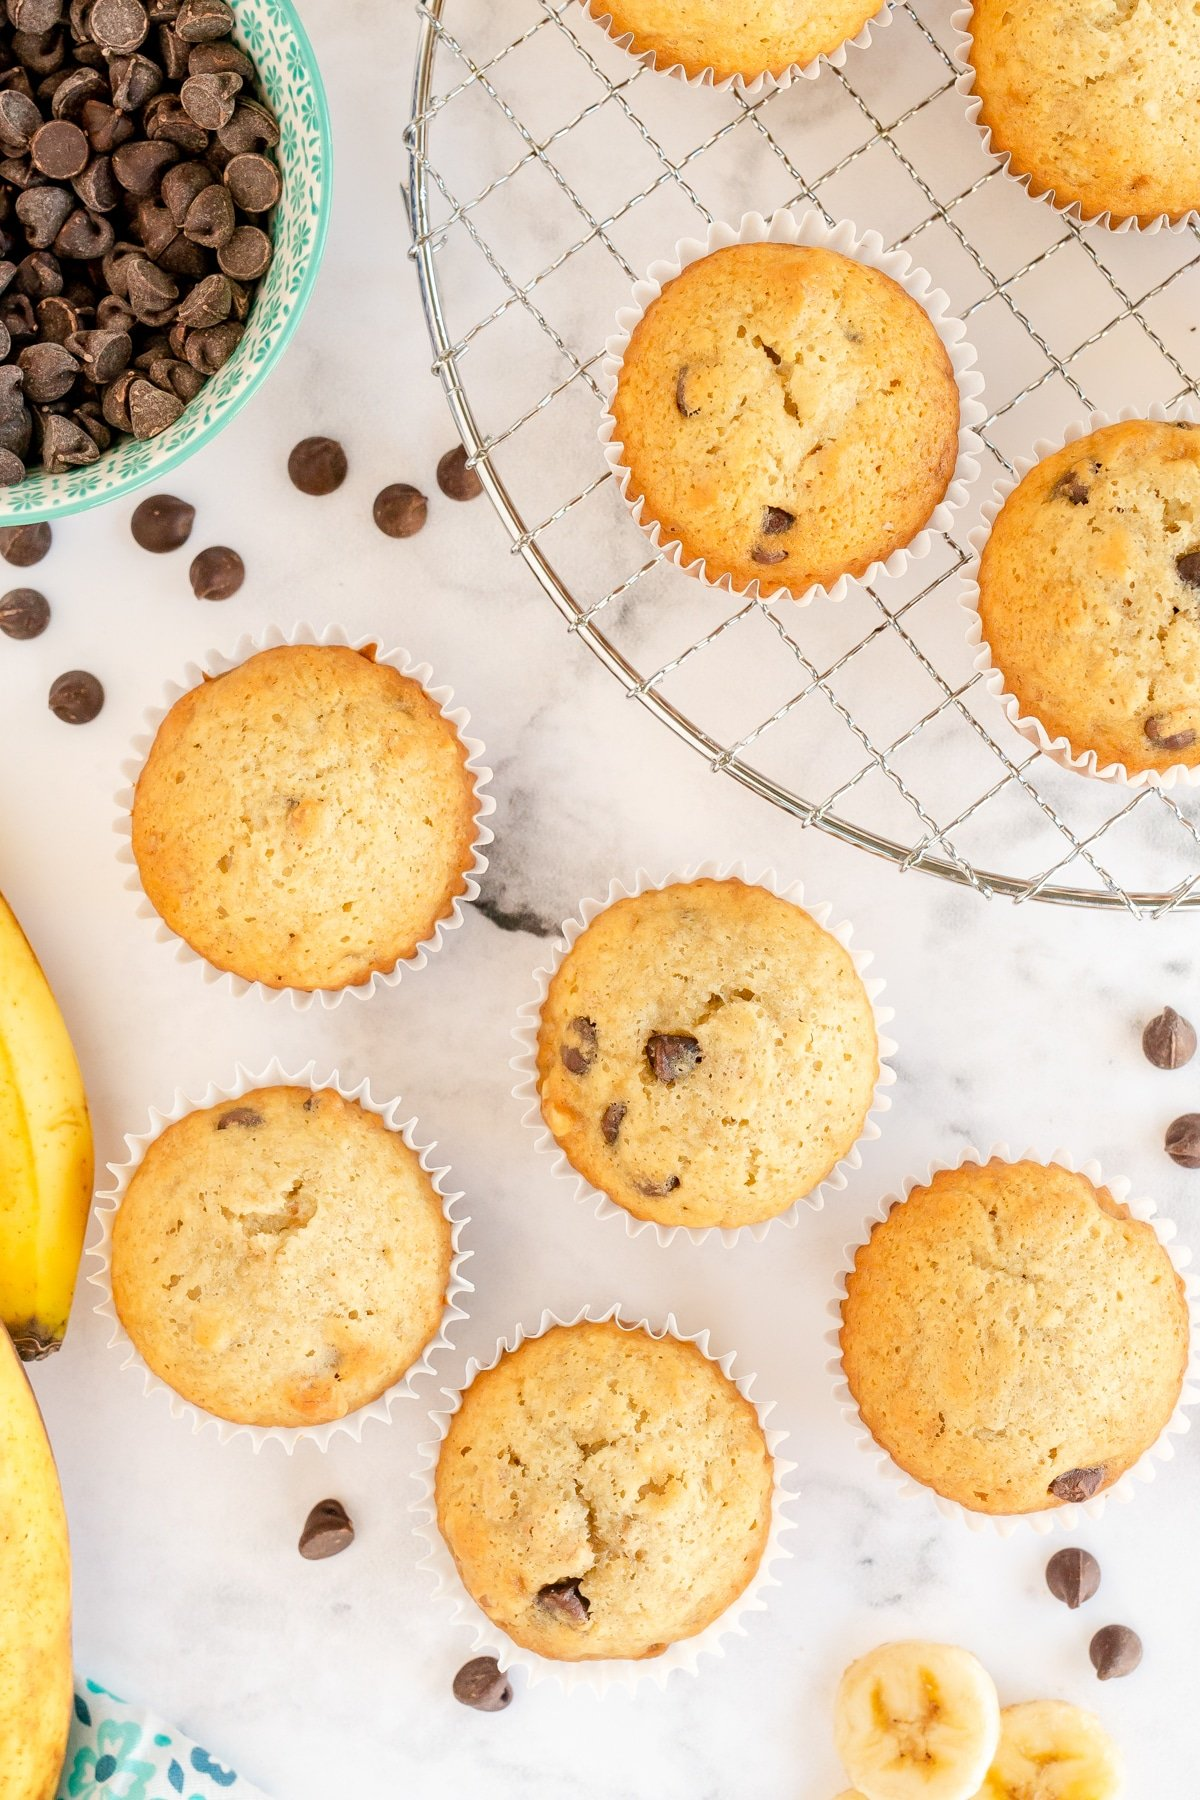 Top down view of banana nut muffins